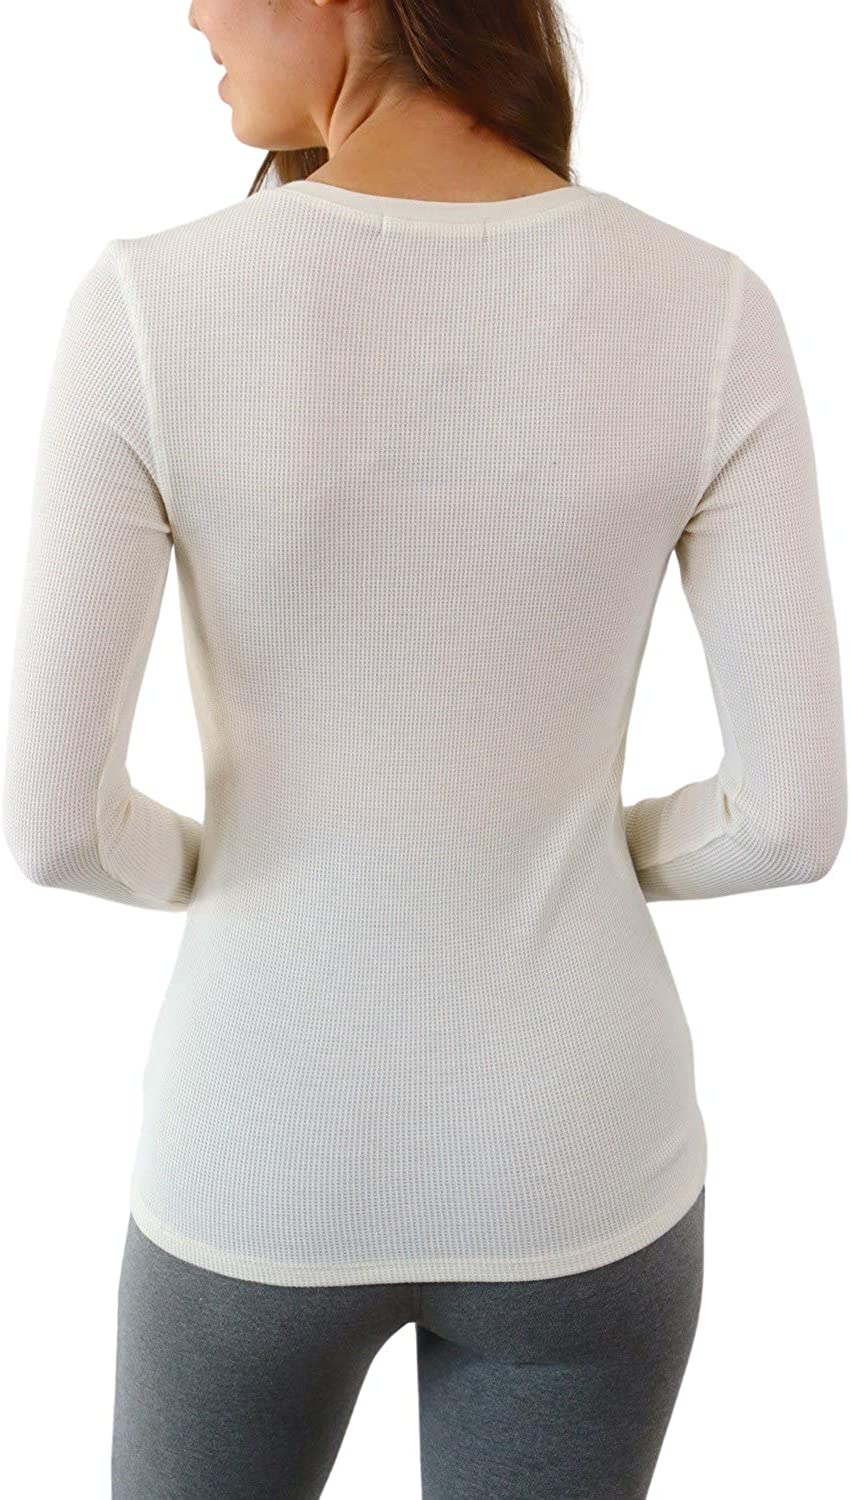 Pure Look Womens Long Sleeve Waffle Knit Stretch Cotton Thermal Underwear Shirt